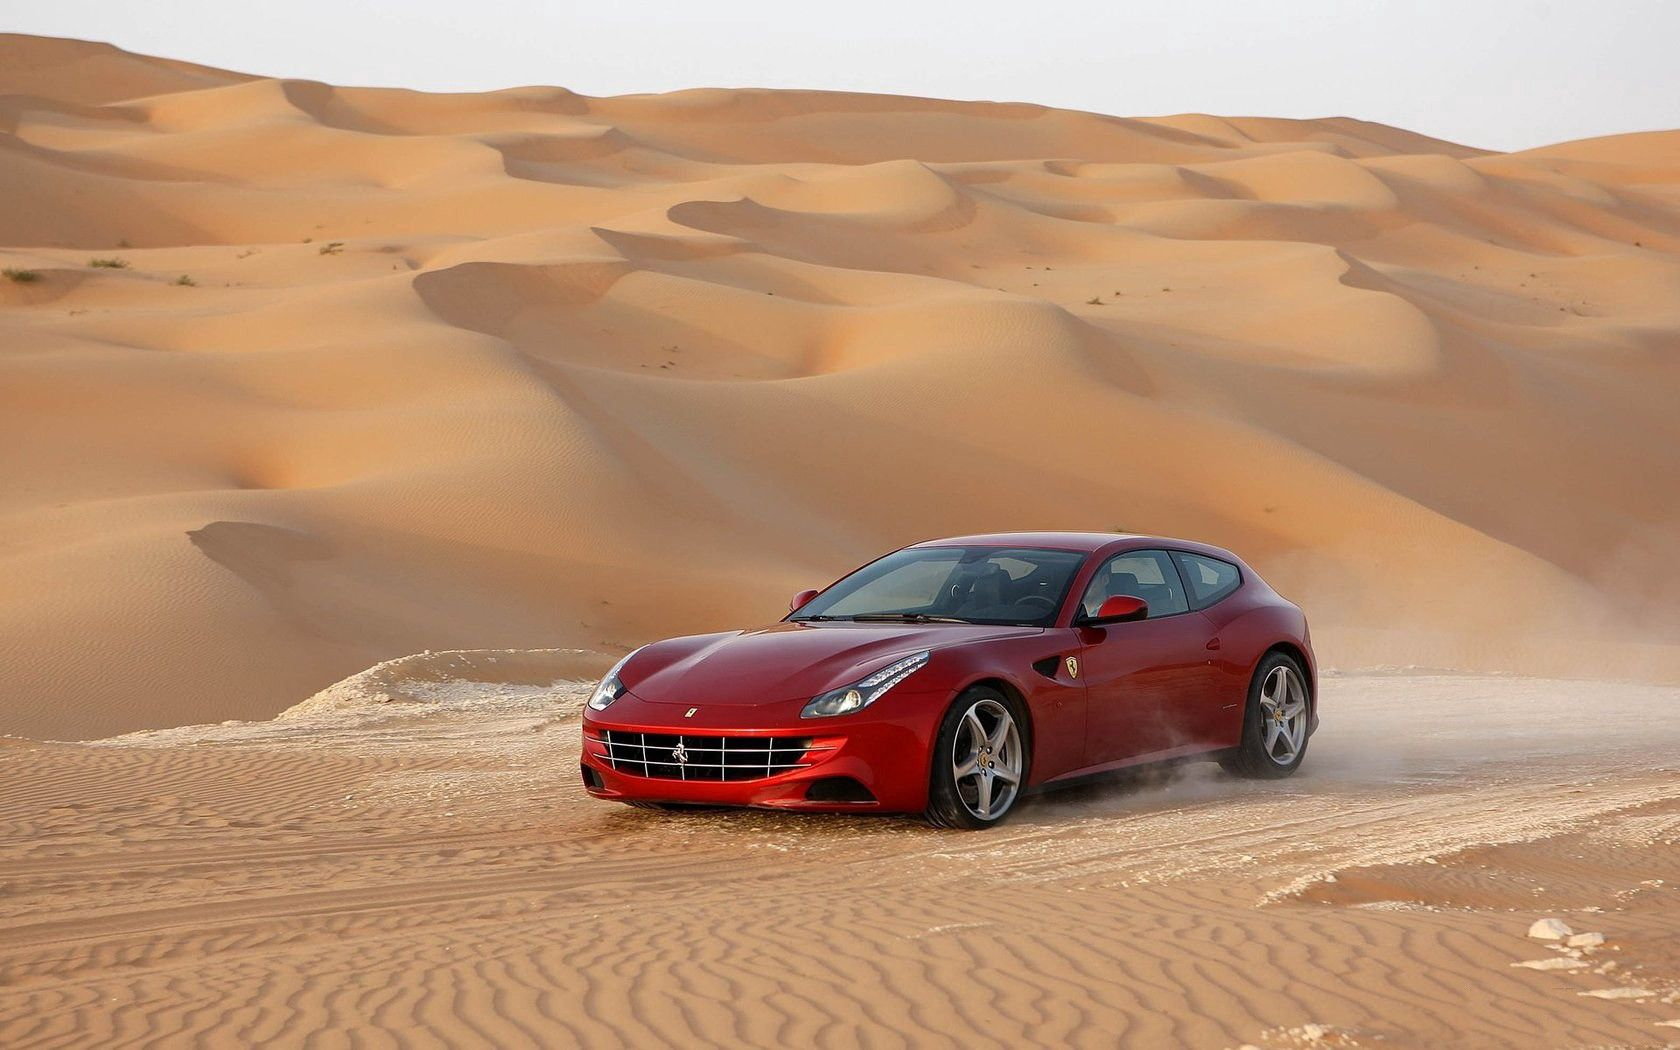 78360 download wallpaper Cars, Ferrari, Auto, Car screensavers and pictures for free